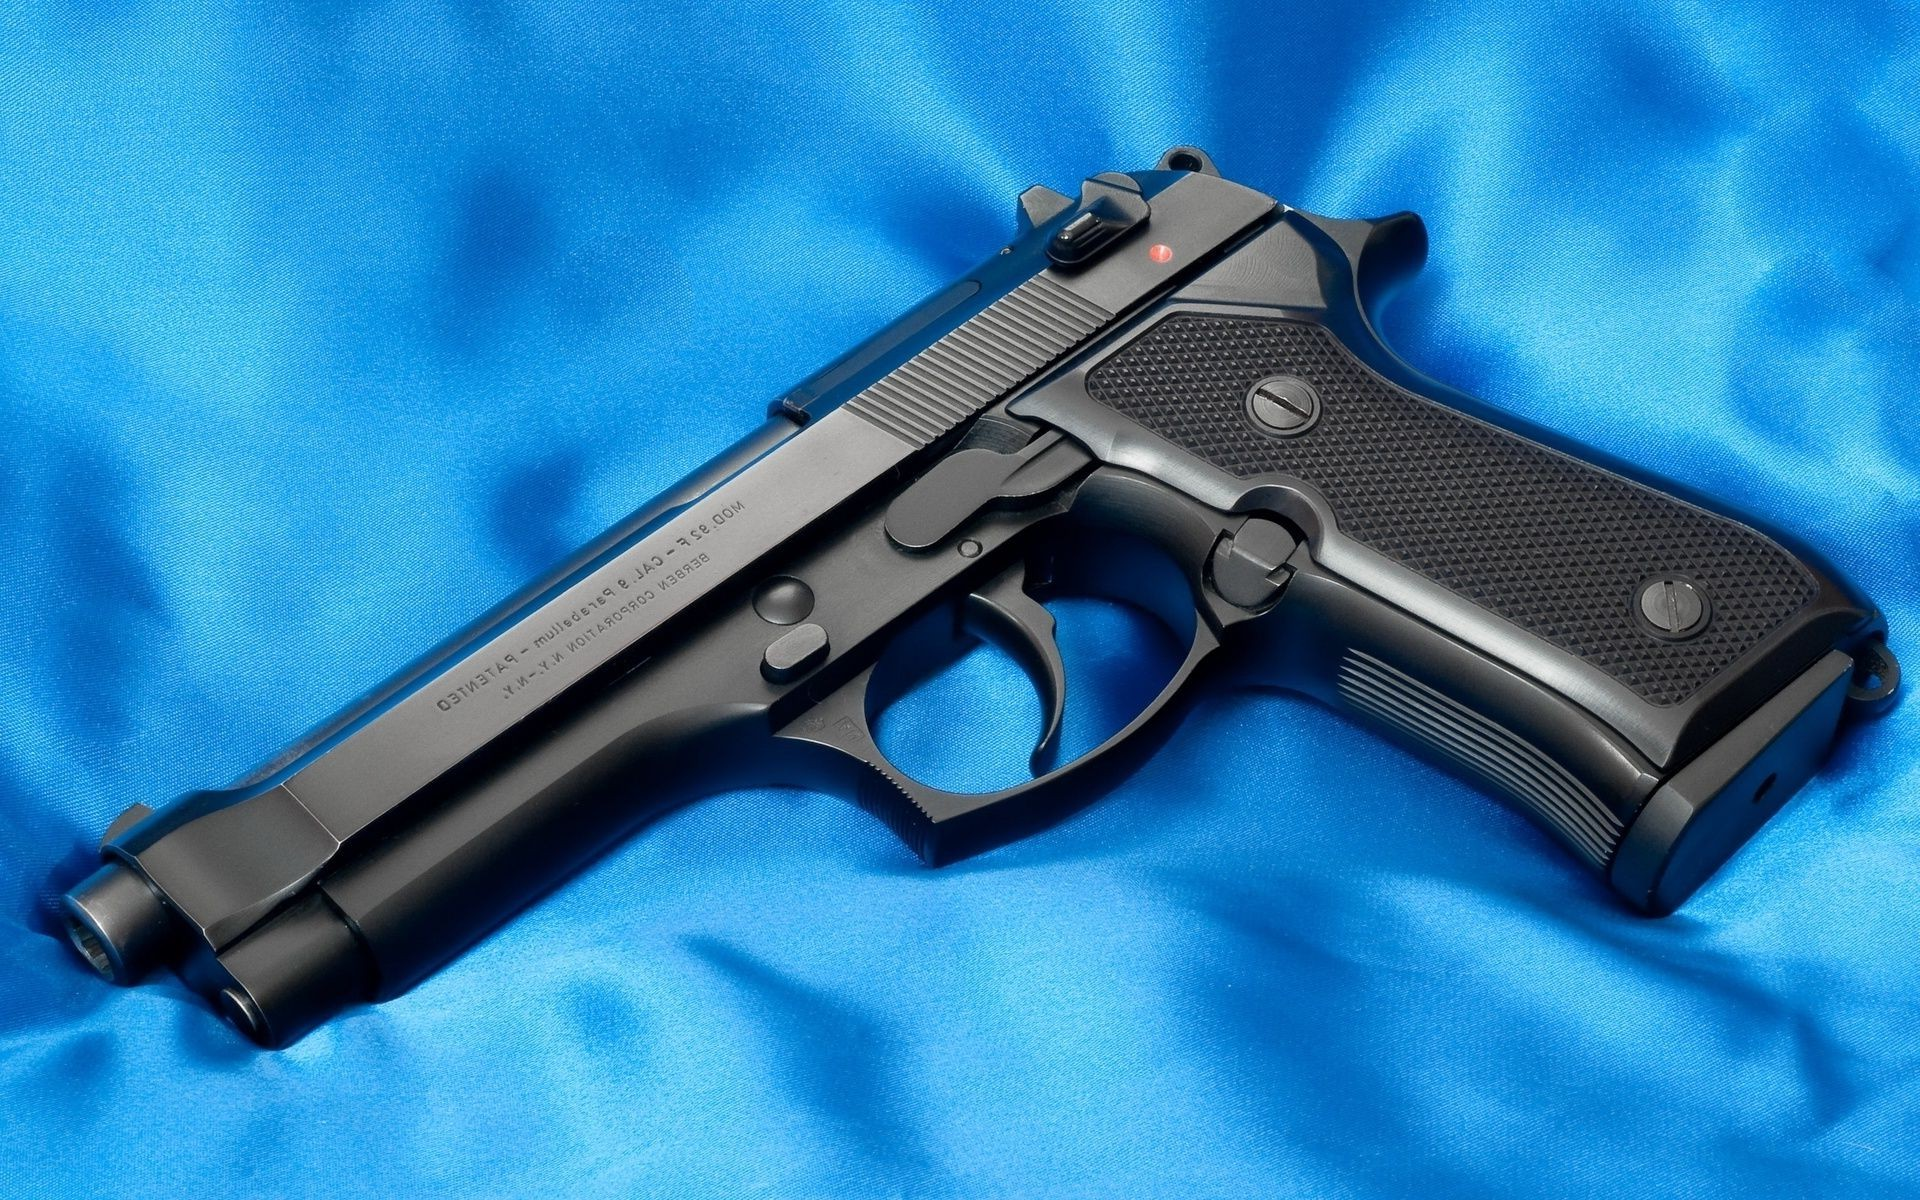 Gun Wallpaper Android Download: Beretta Gun Black Blue Background. Android Wallpapers For